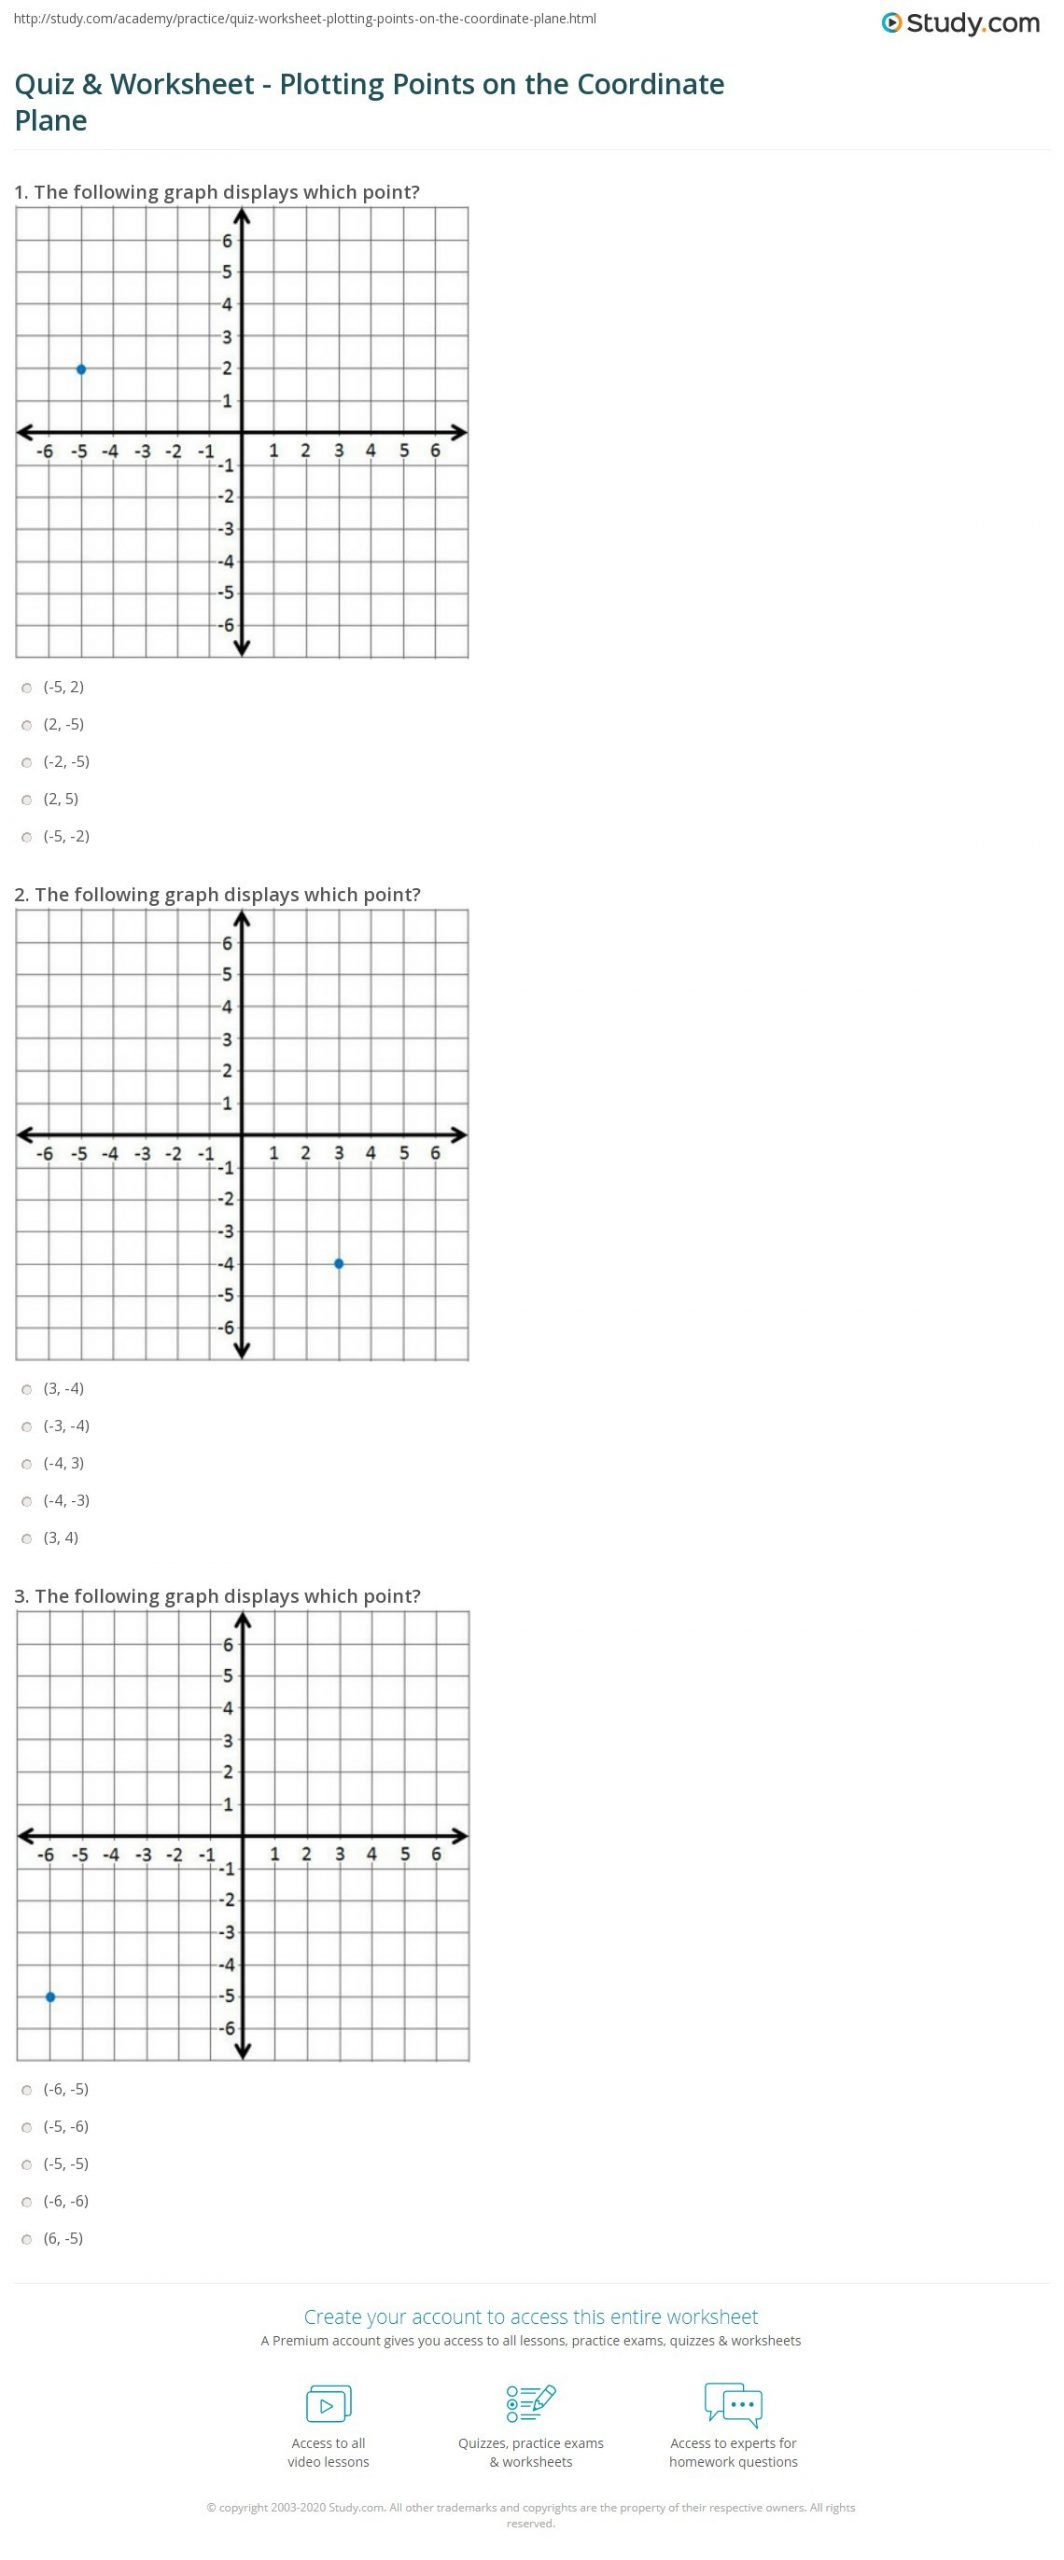 quiz worksheet plotting points on the coordinate plane